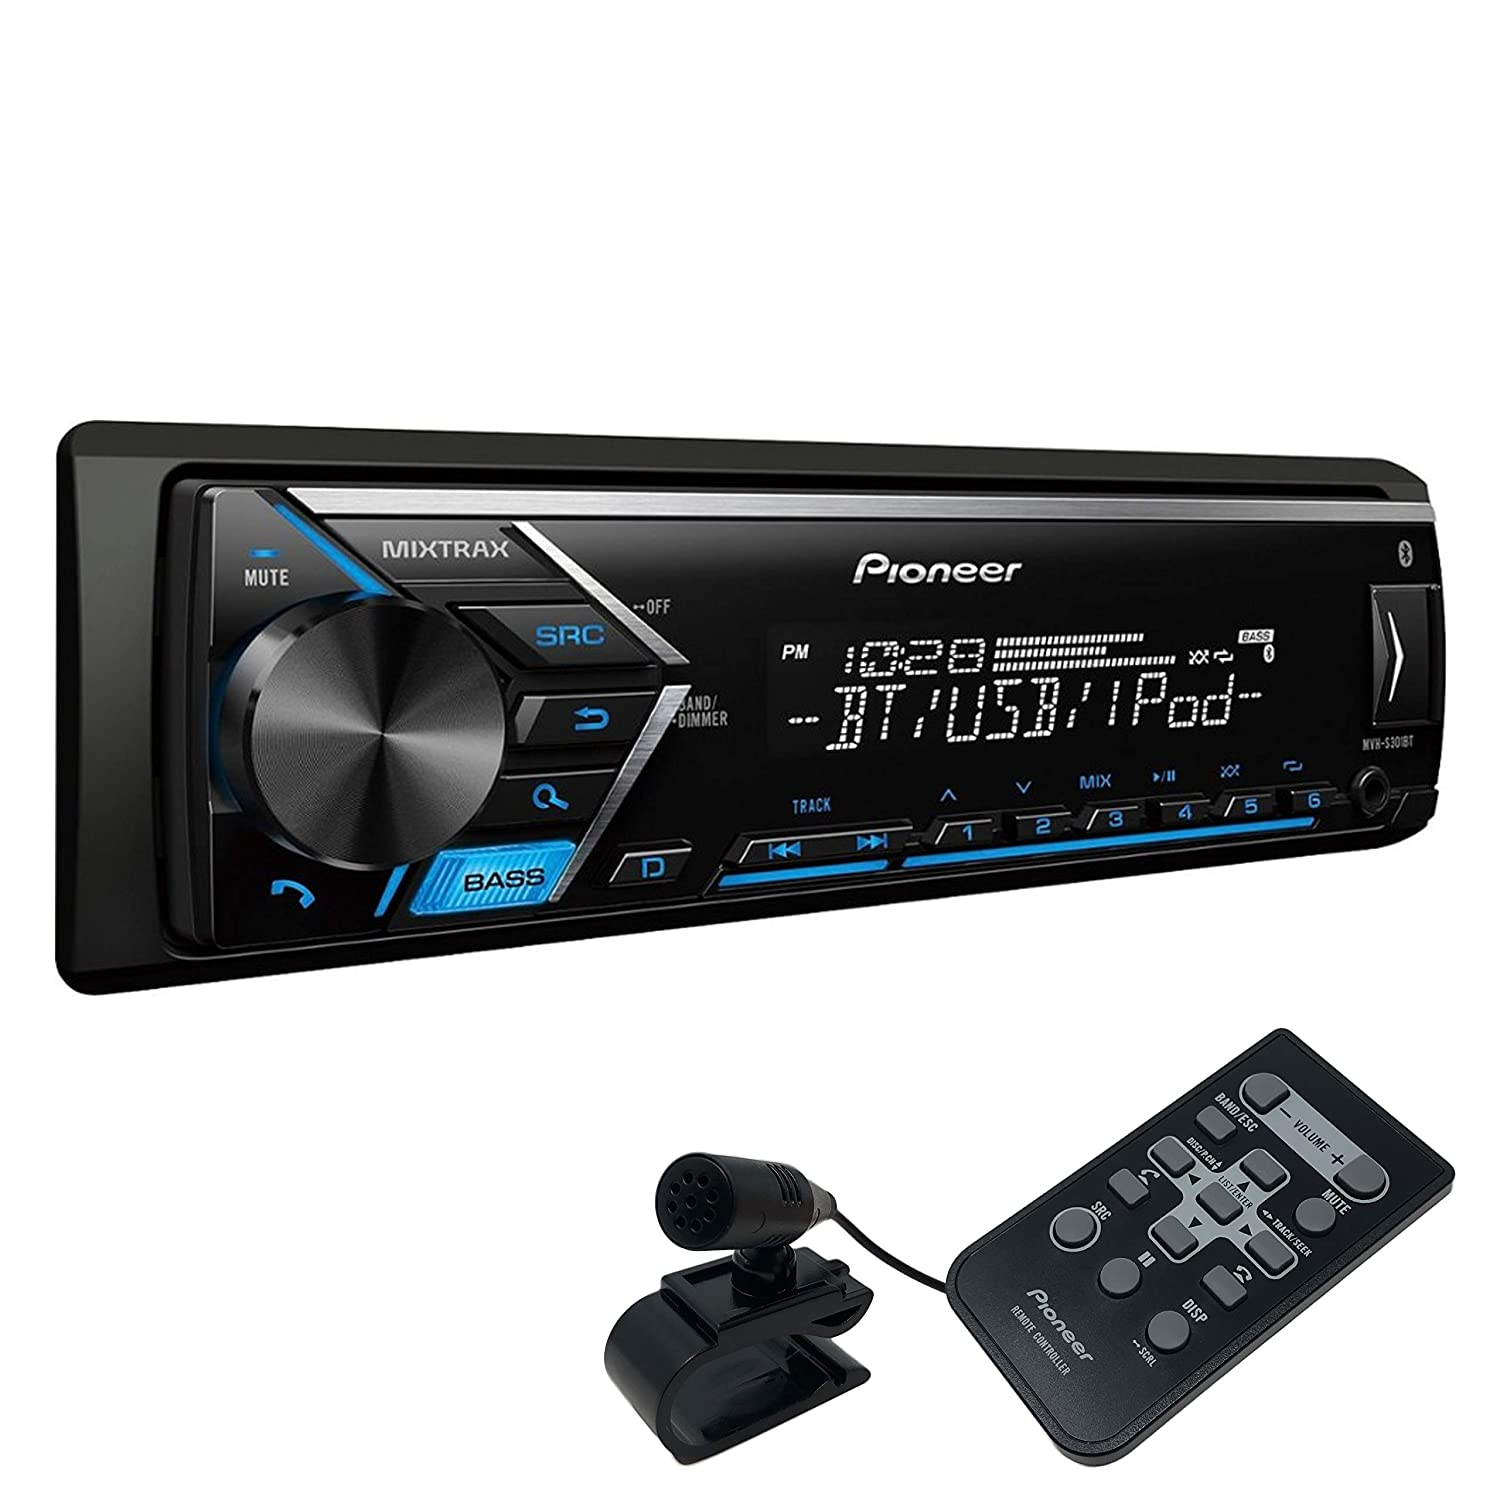 MIXTRAX Pioneer MVH-S301BT Single DIN Digital Media Receiver with Improved ARC App Compatibility Built-in Bluetooth Pioneer Electronic